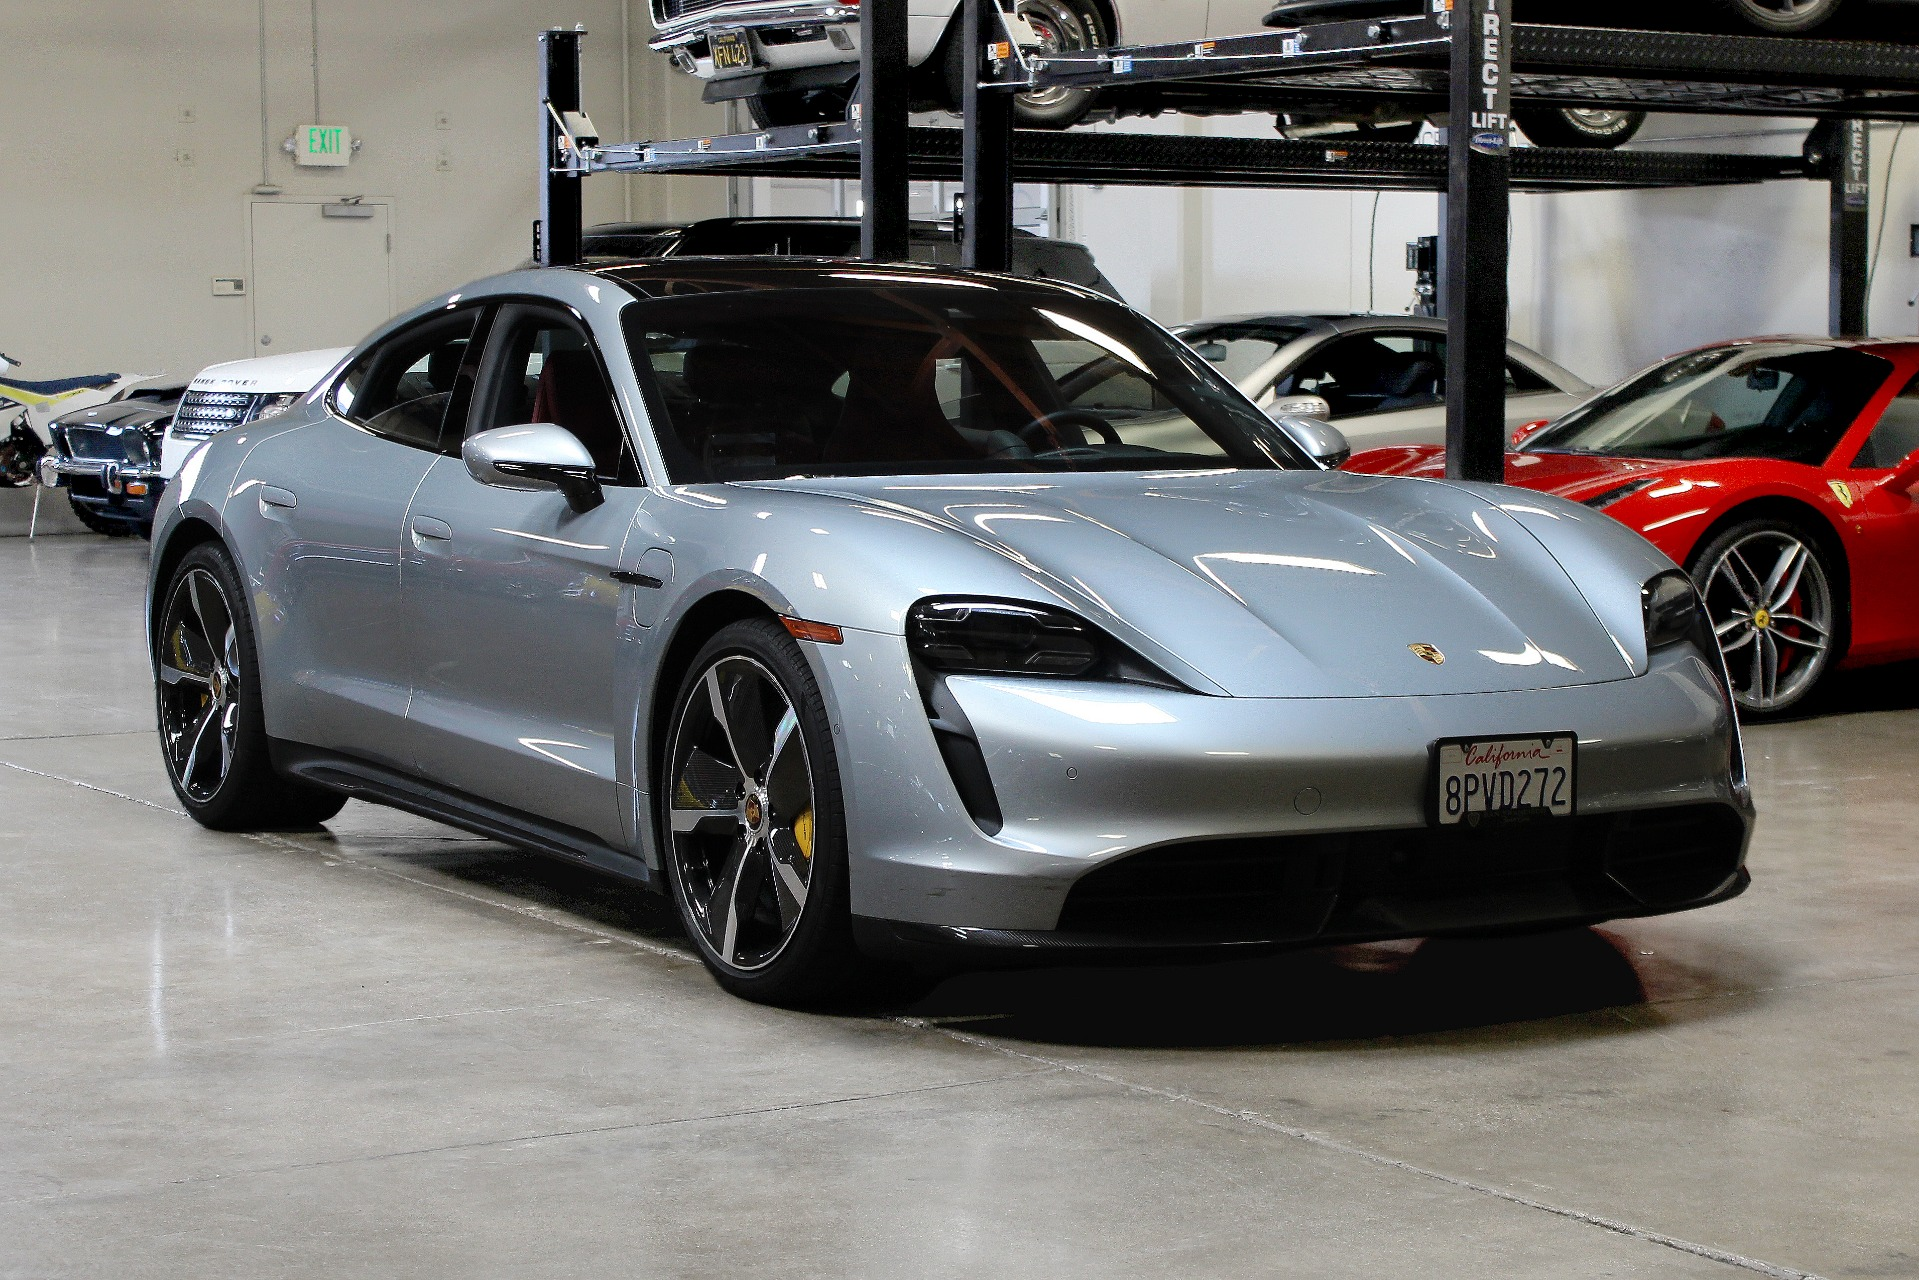 Used 2020 Porsche Taycan Turbo S for sale $184,995 at San Francisco Sports Cars in San Carlos CA 94070 1